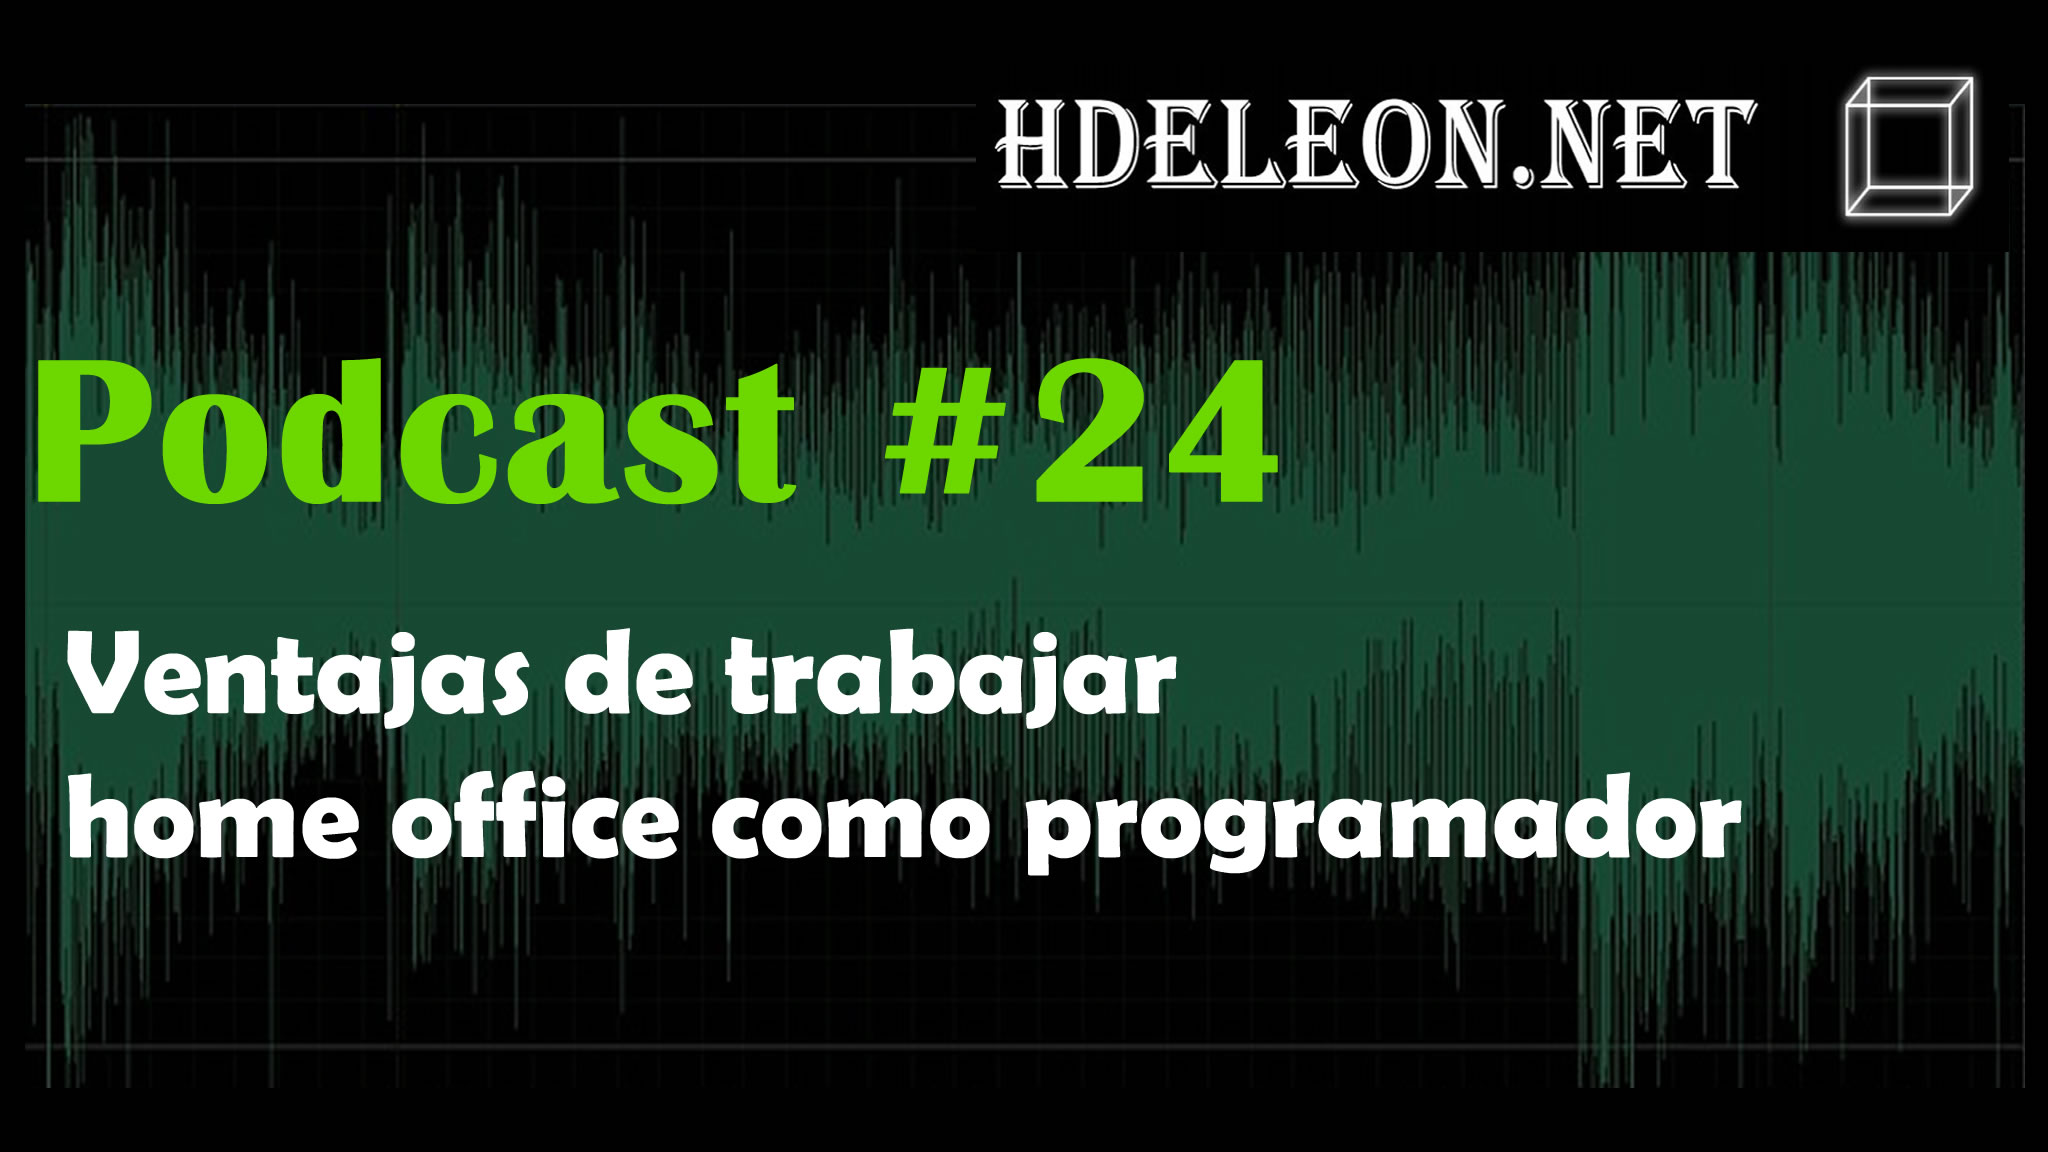 Podcast #24 – Ventajas de trabajar home office como programador